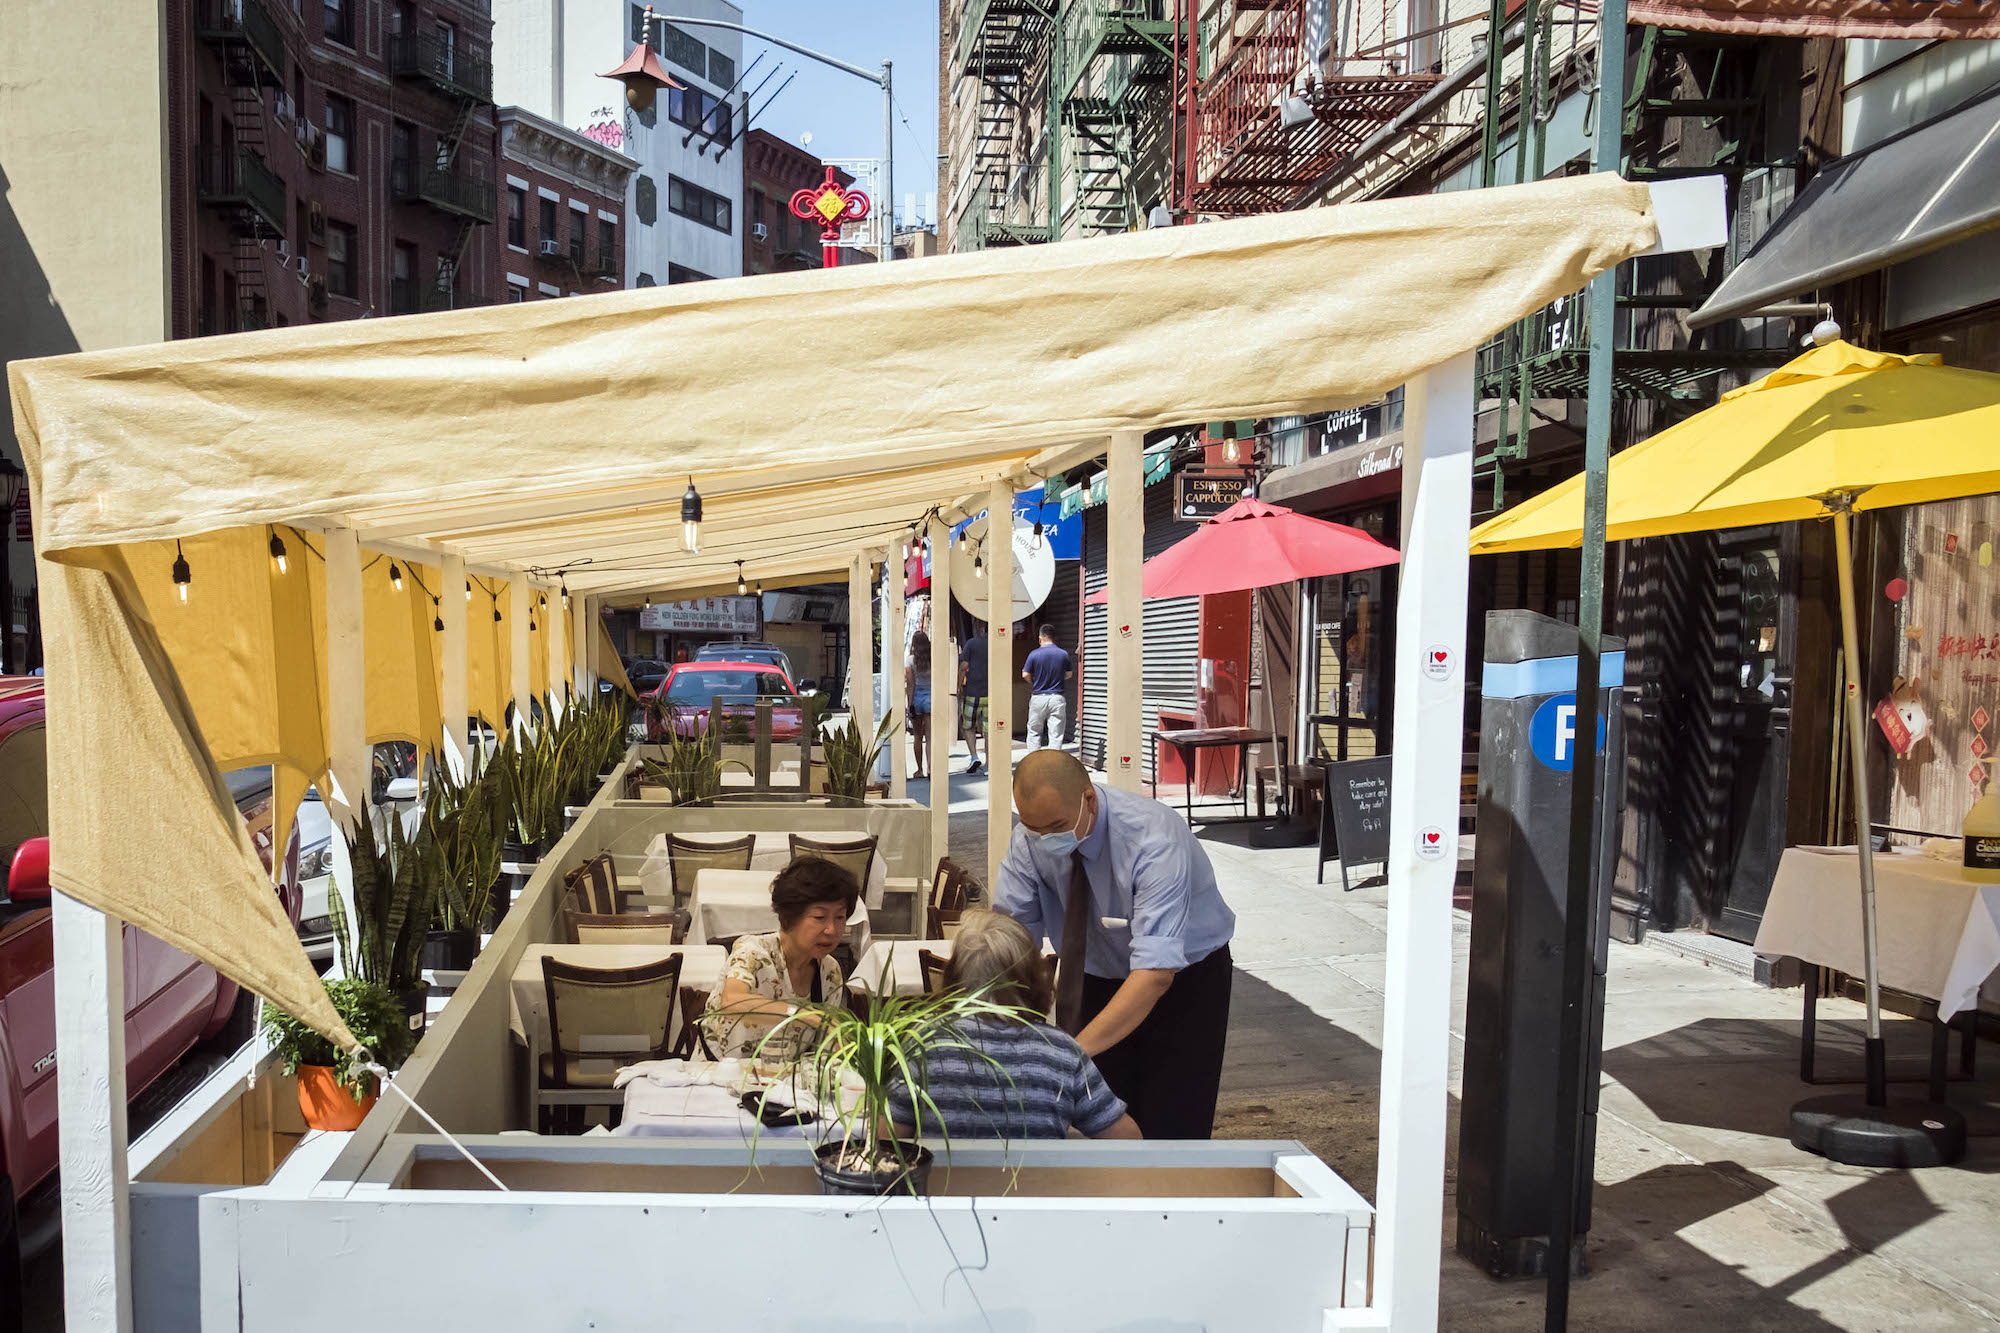 New Program Asks Architects To Help Design Outdoor Dining Spaces For Nyc Restaurants 6sqft